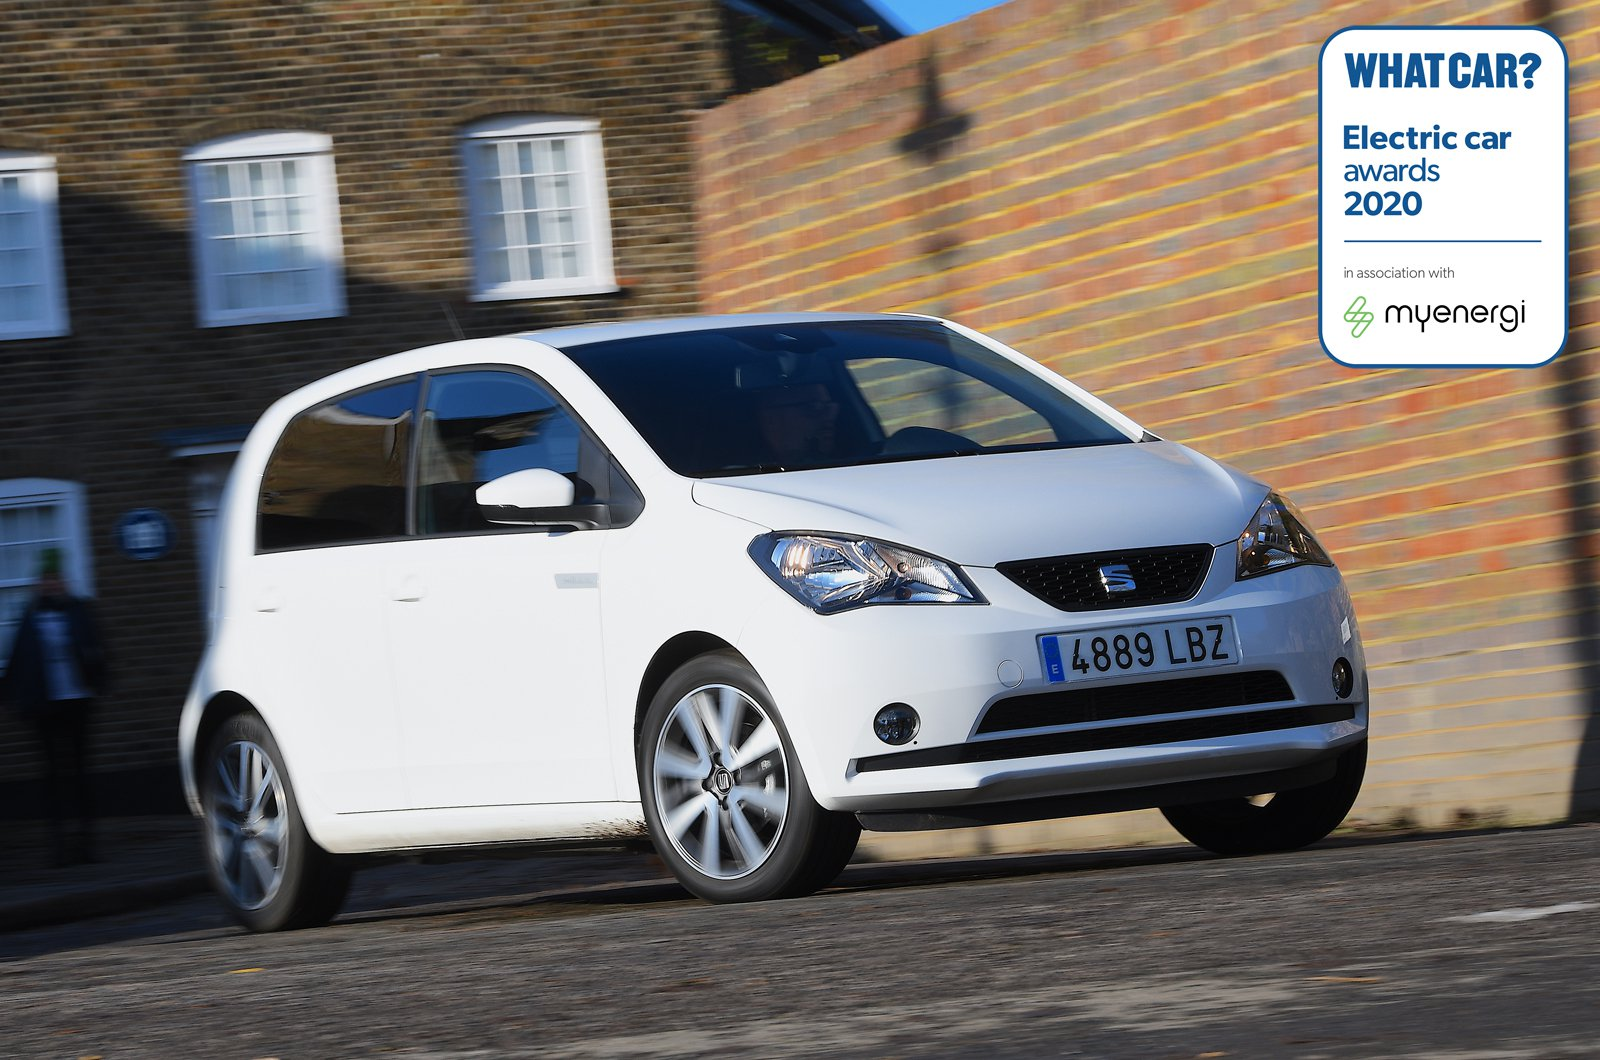 SEAT Mii wins best value EV in the What Car? Electric Car Awards 2020